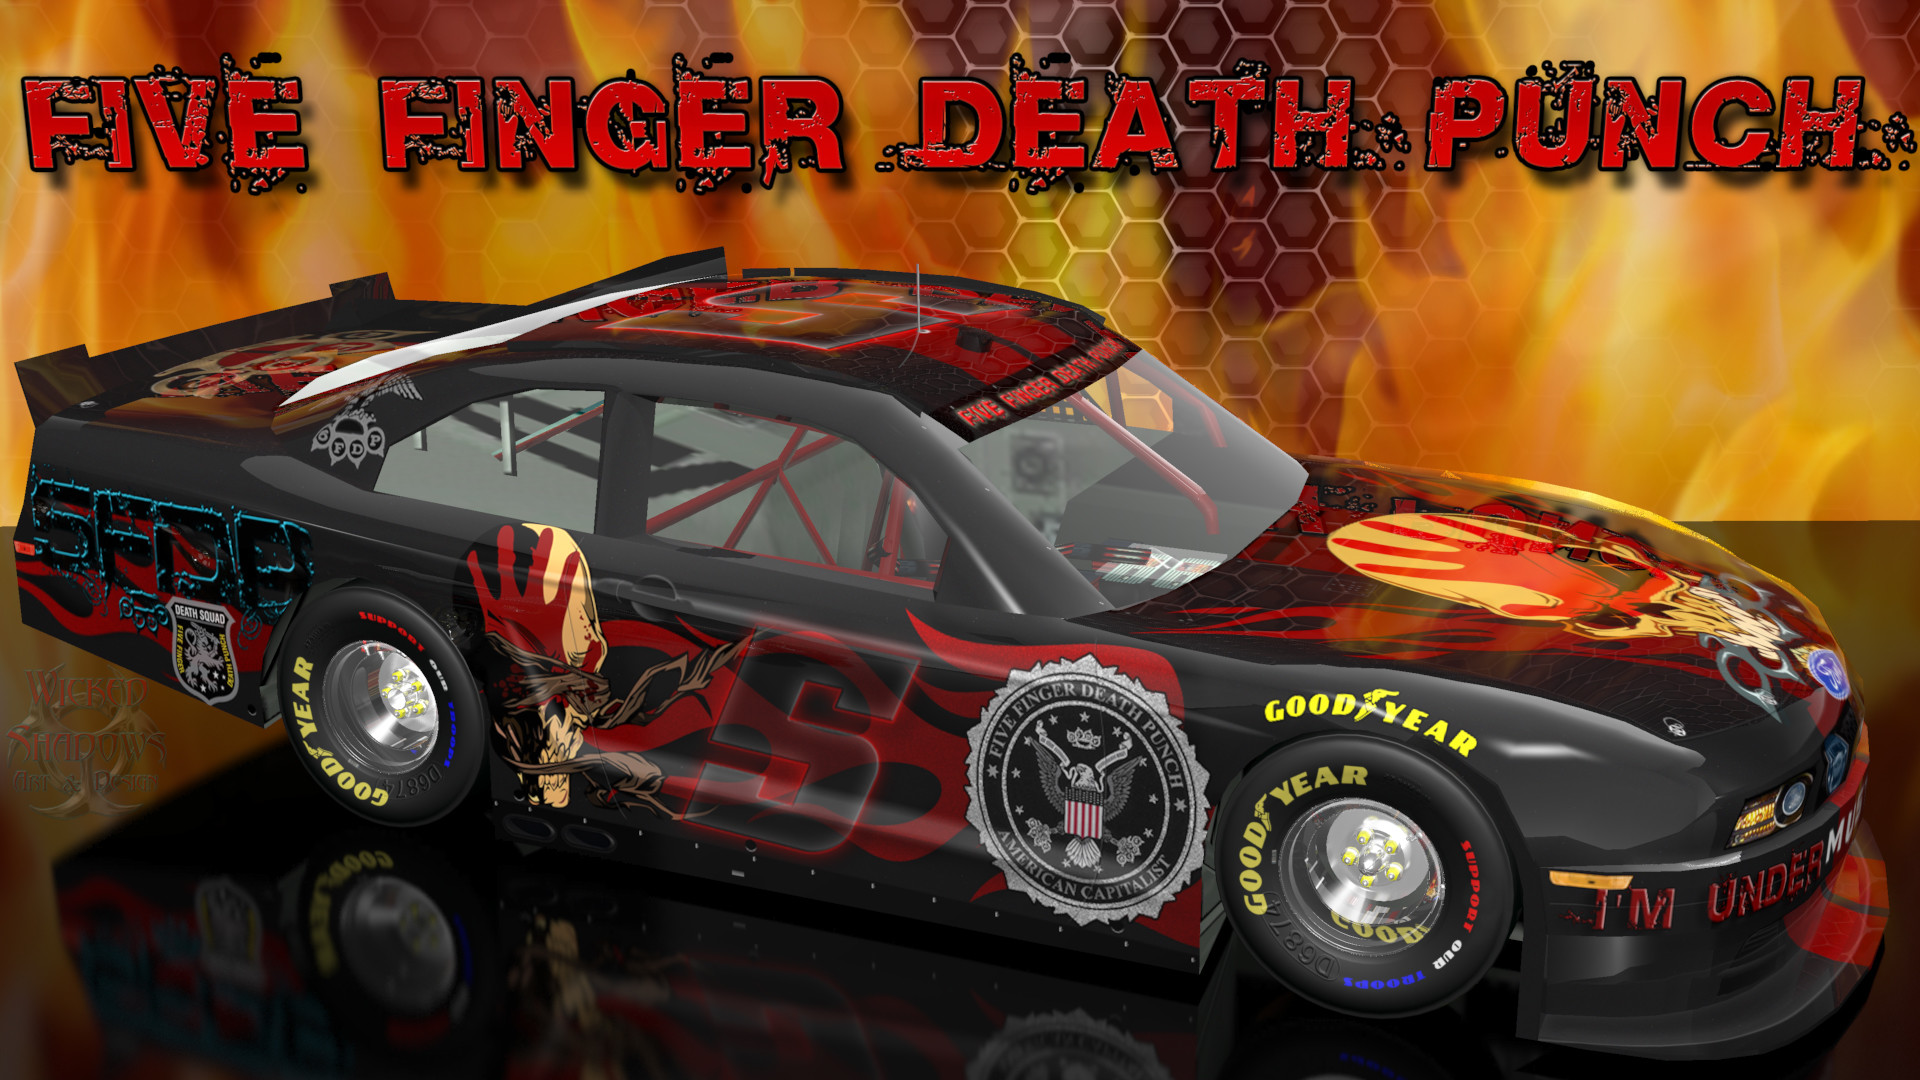 1920x1080 ... Single Car Alt Version | 16x10 | 16x10 Single Car Alt Version Five  Finger Death Punch Wicked Ford Mustang Wallpaper ...